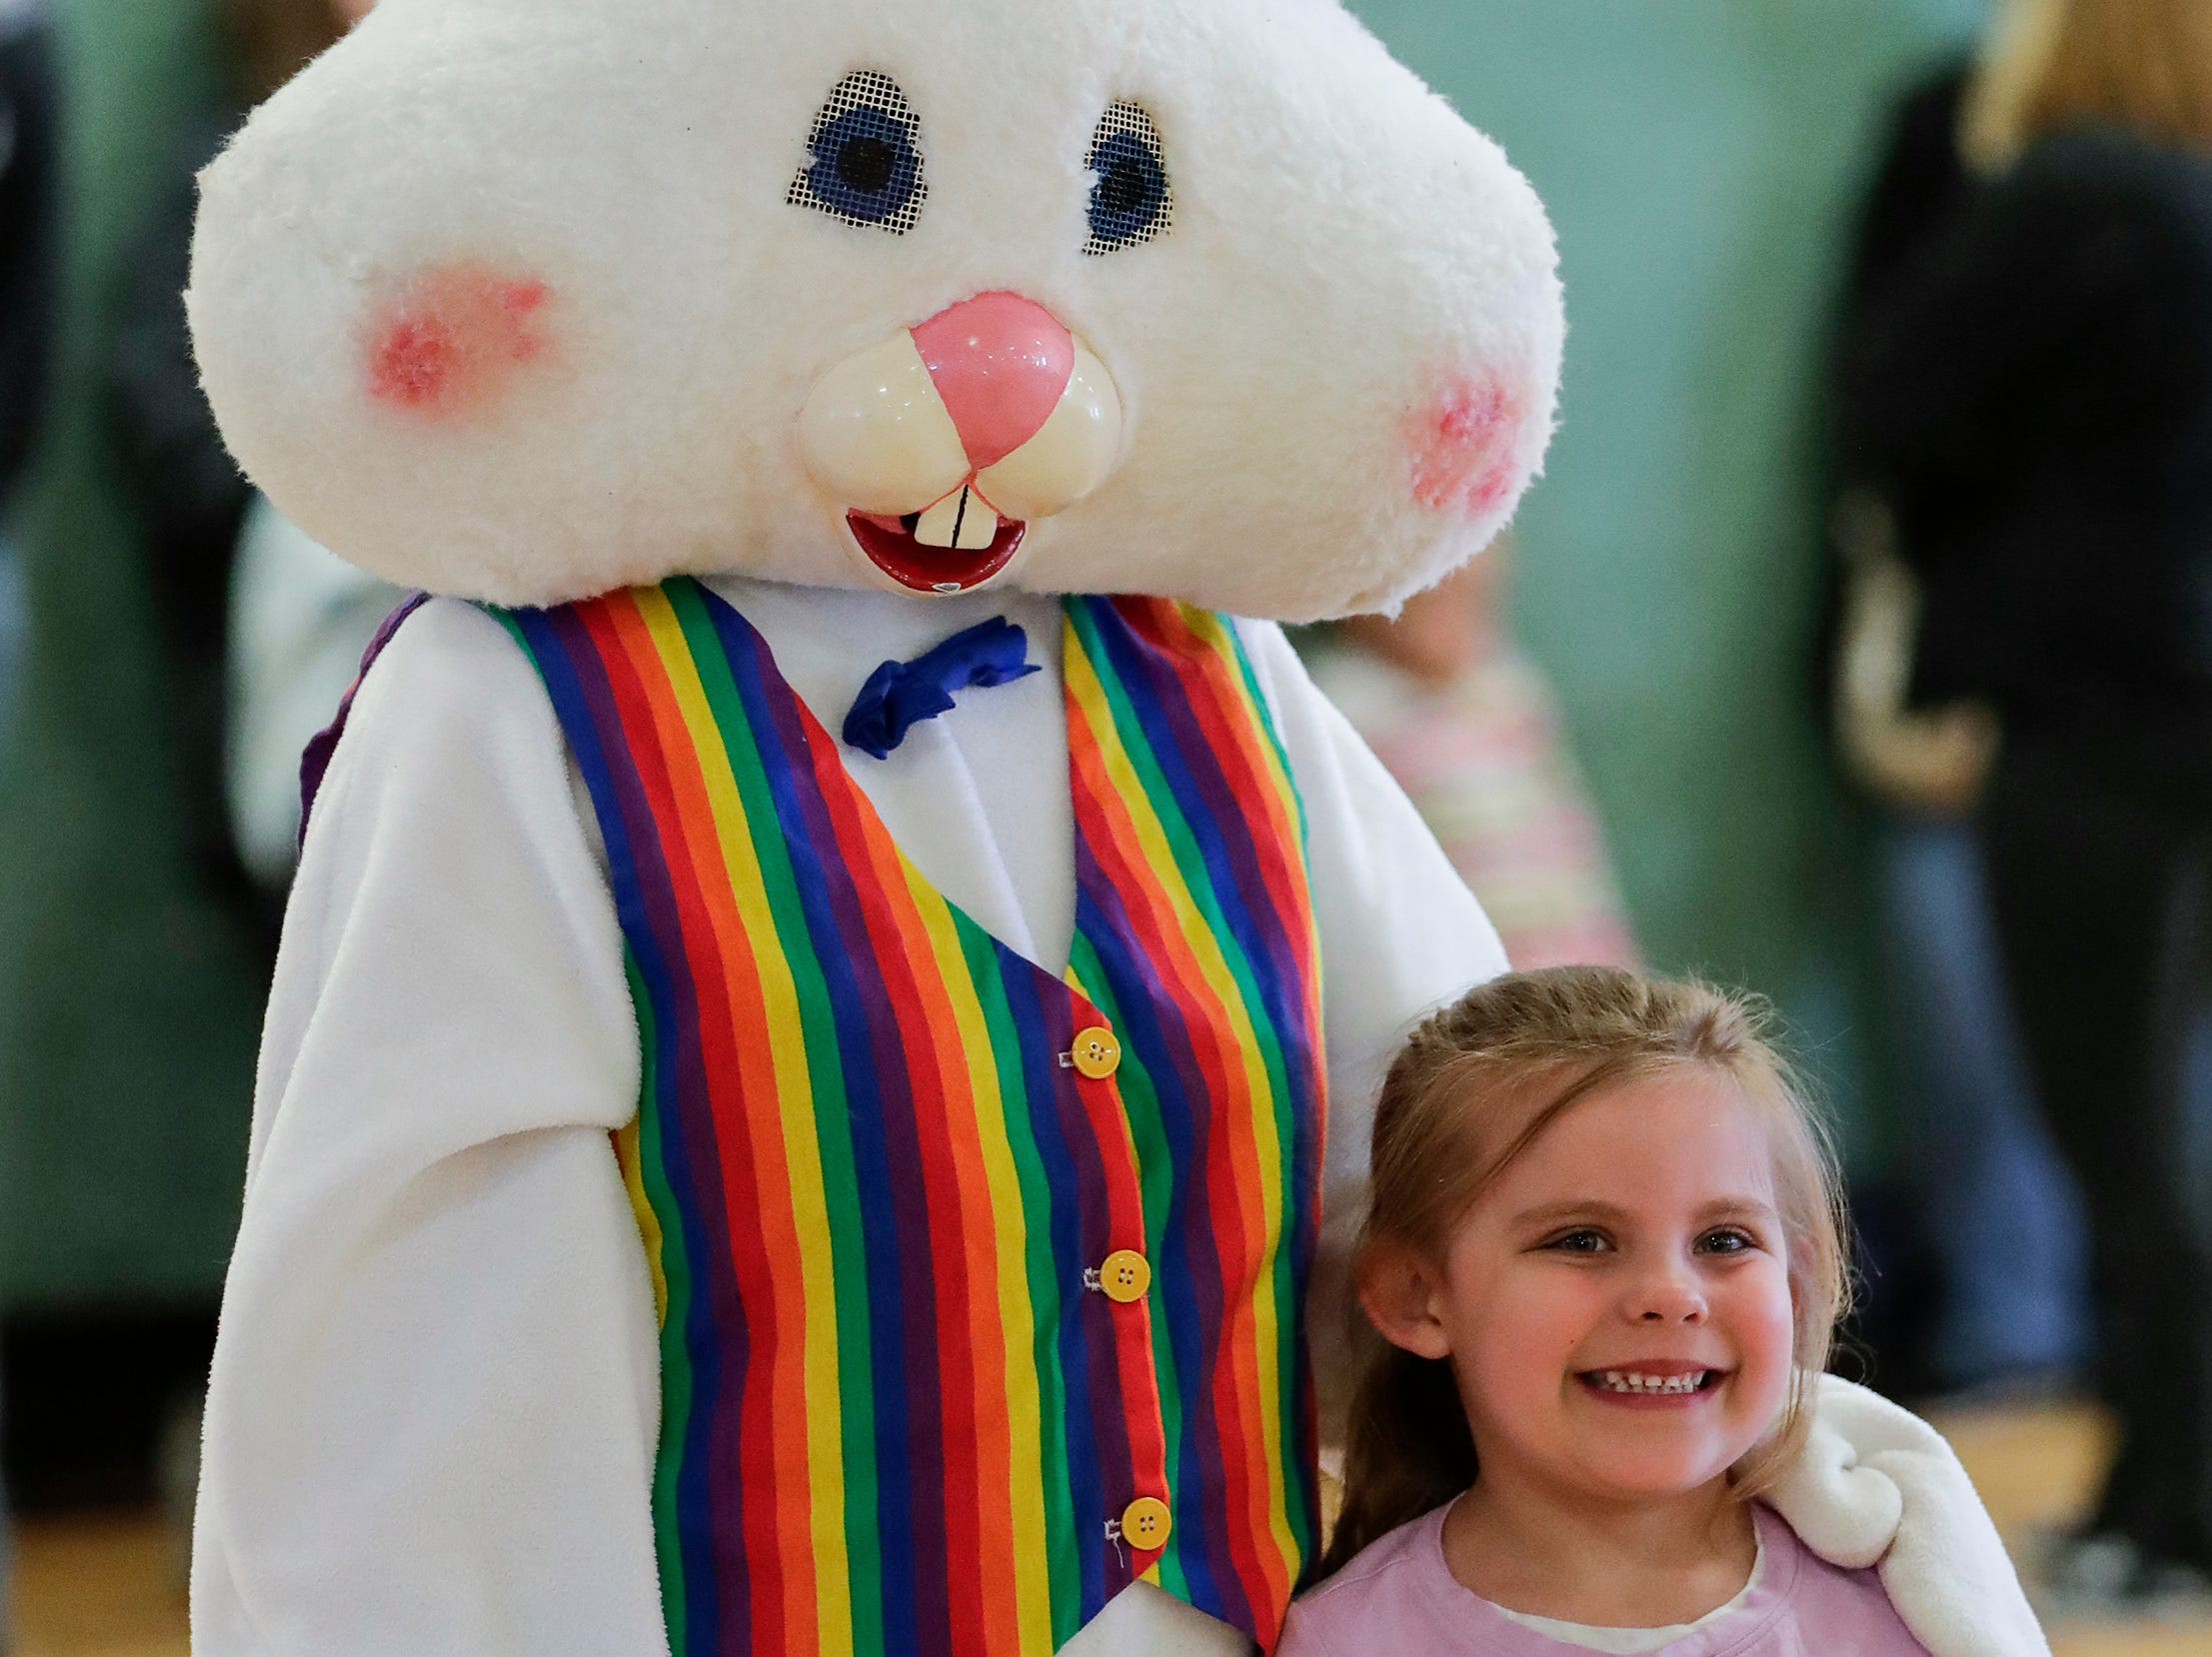 Sophie Wanta poses with the Easter bunny during the Easter Eggstravaganza at Citizen Park Saturday, April 20, 2019, in Manitowoc, Wis. Joshua Clark/USA TODAY NETWORK-Wisconsin